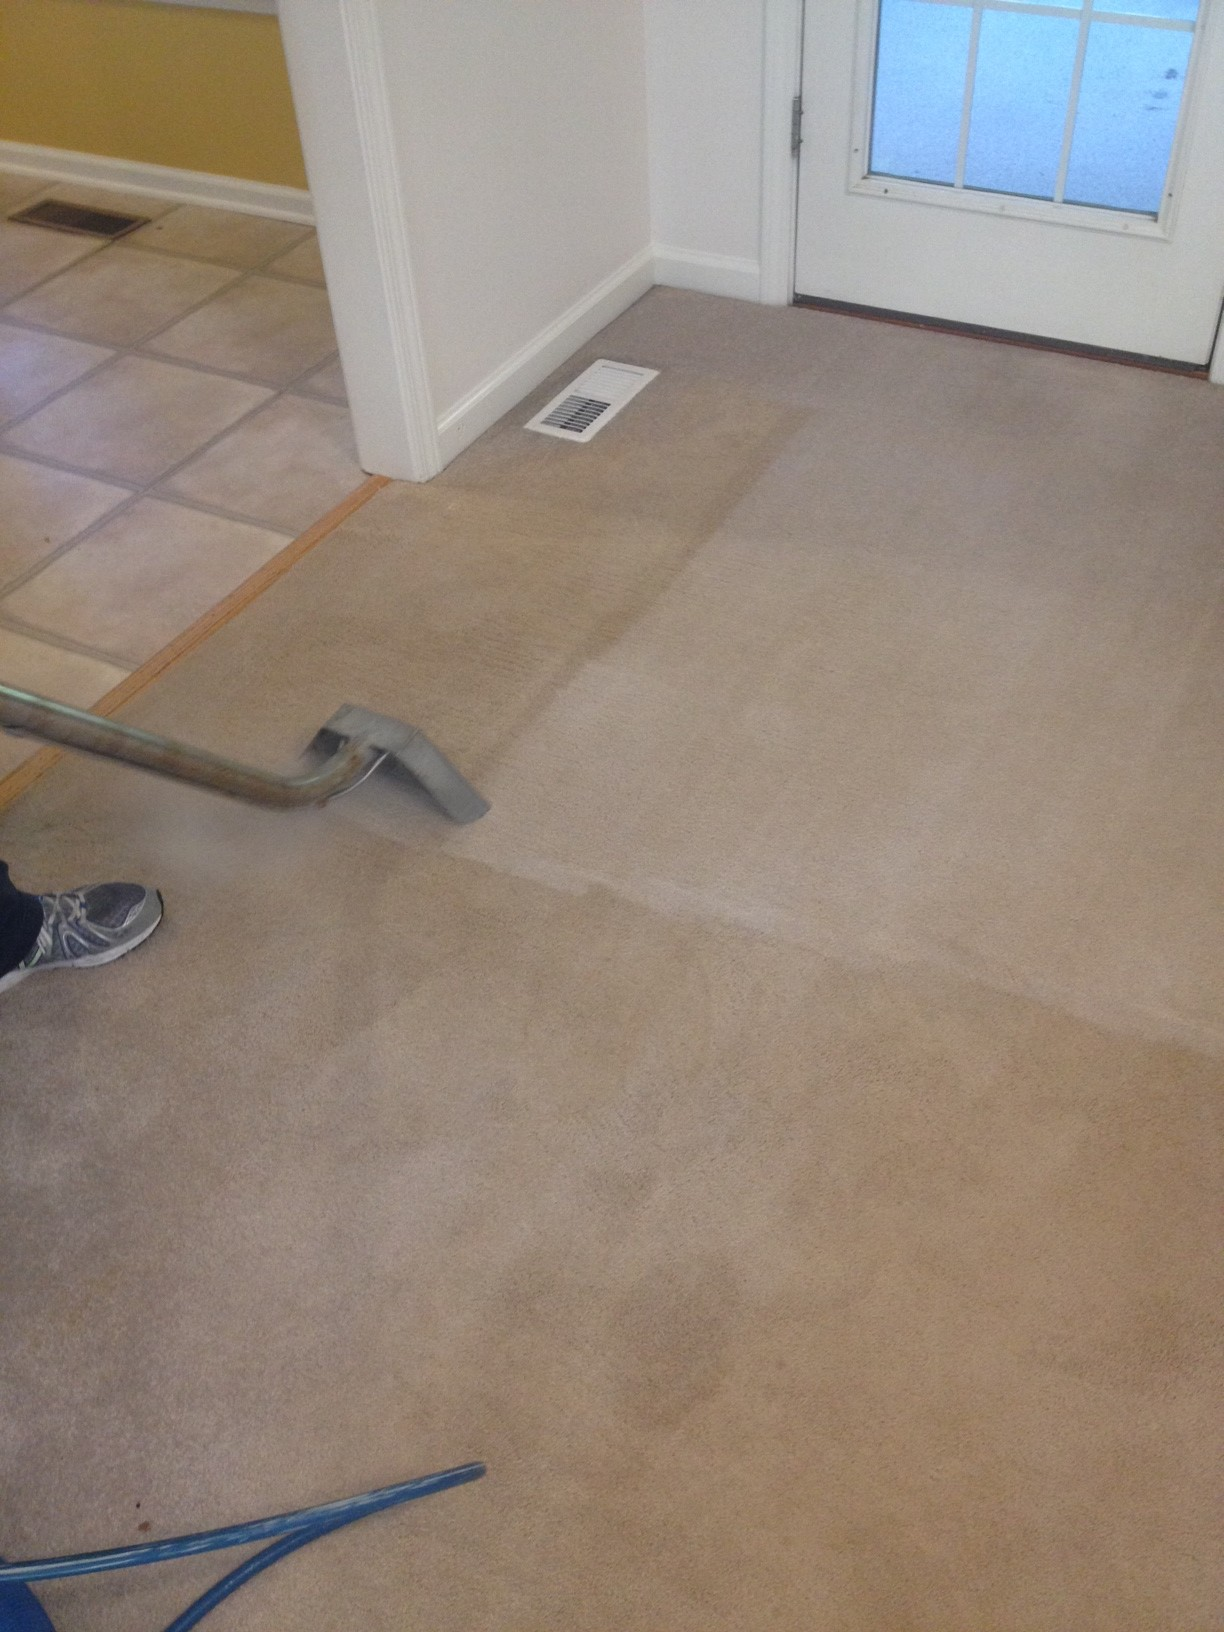 photo gallery atlanta s top consumer rated carpet cleaning yes these are actual photos taken on various job sites amazing huh